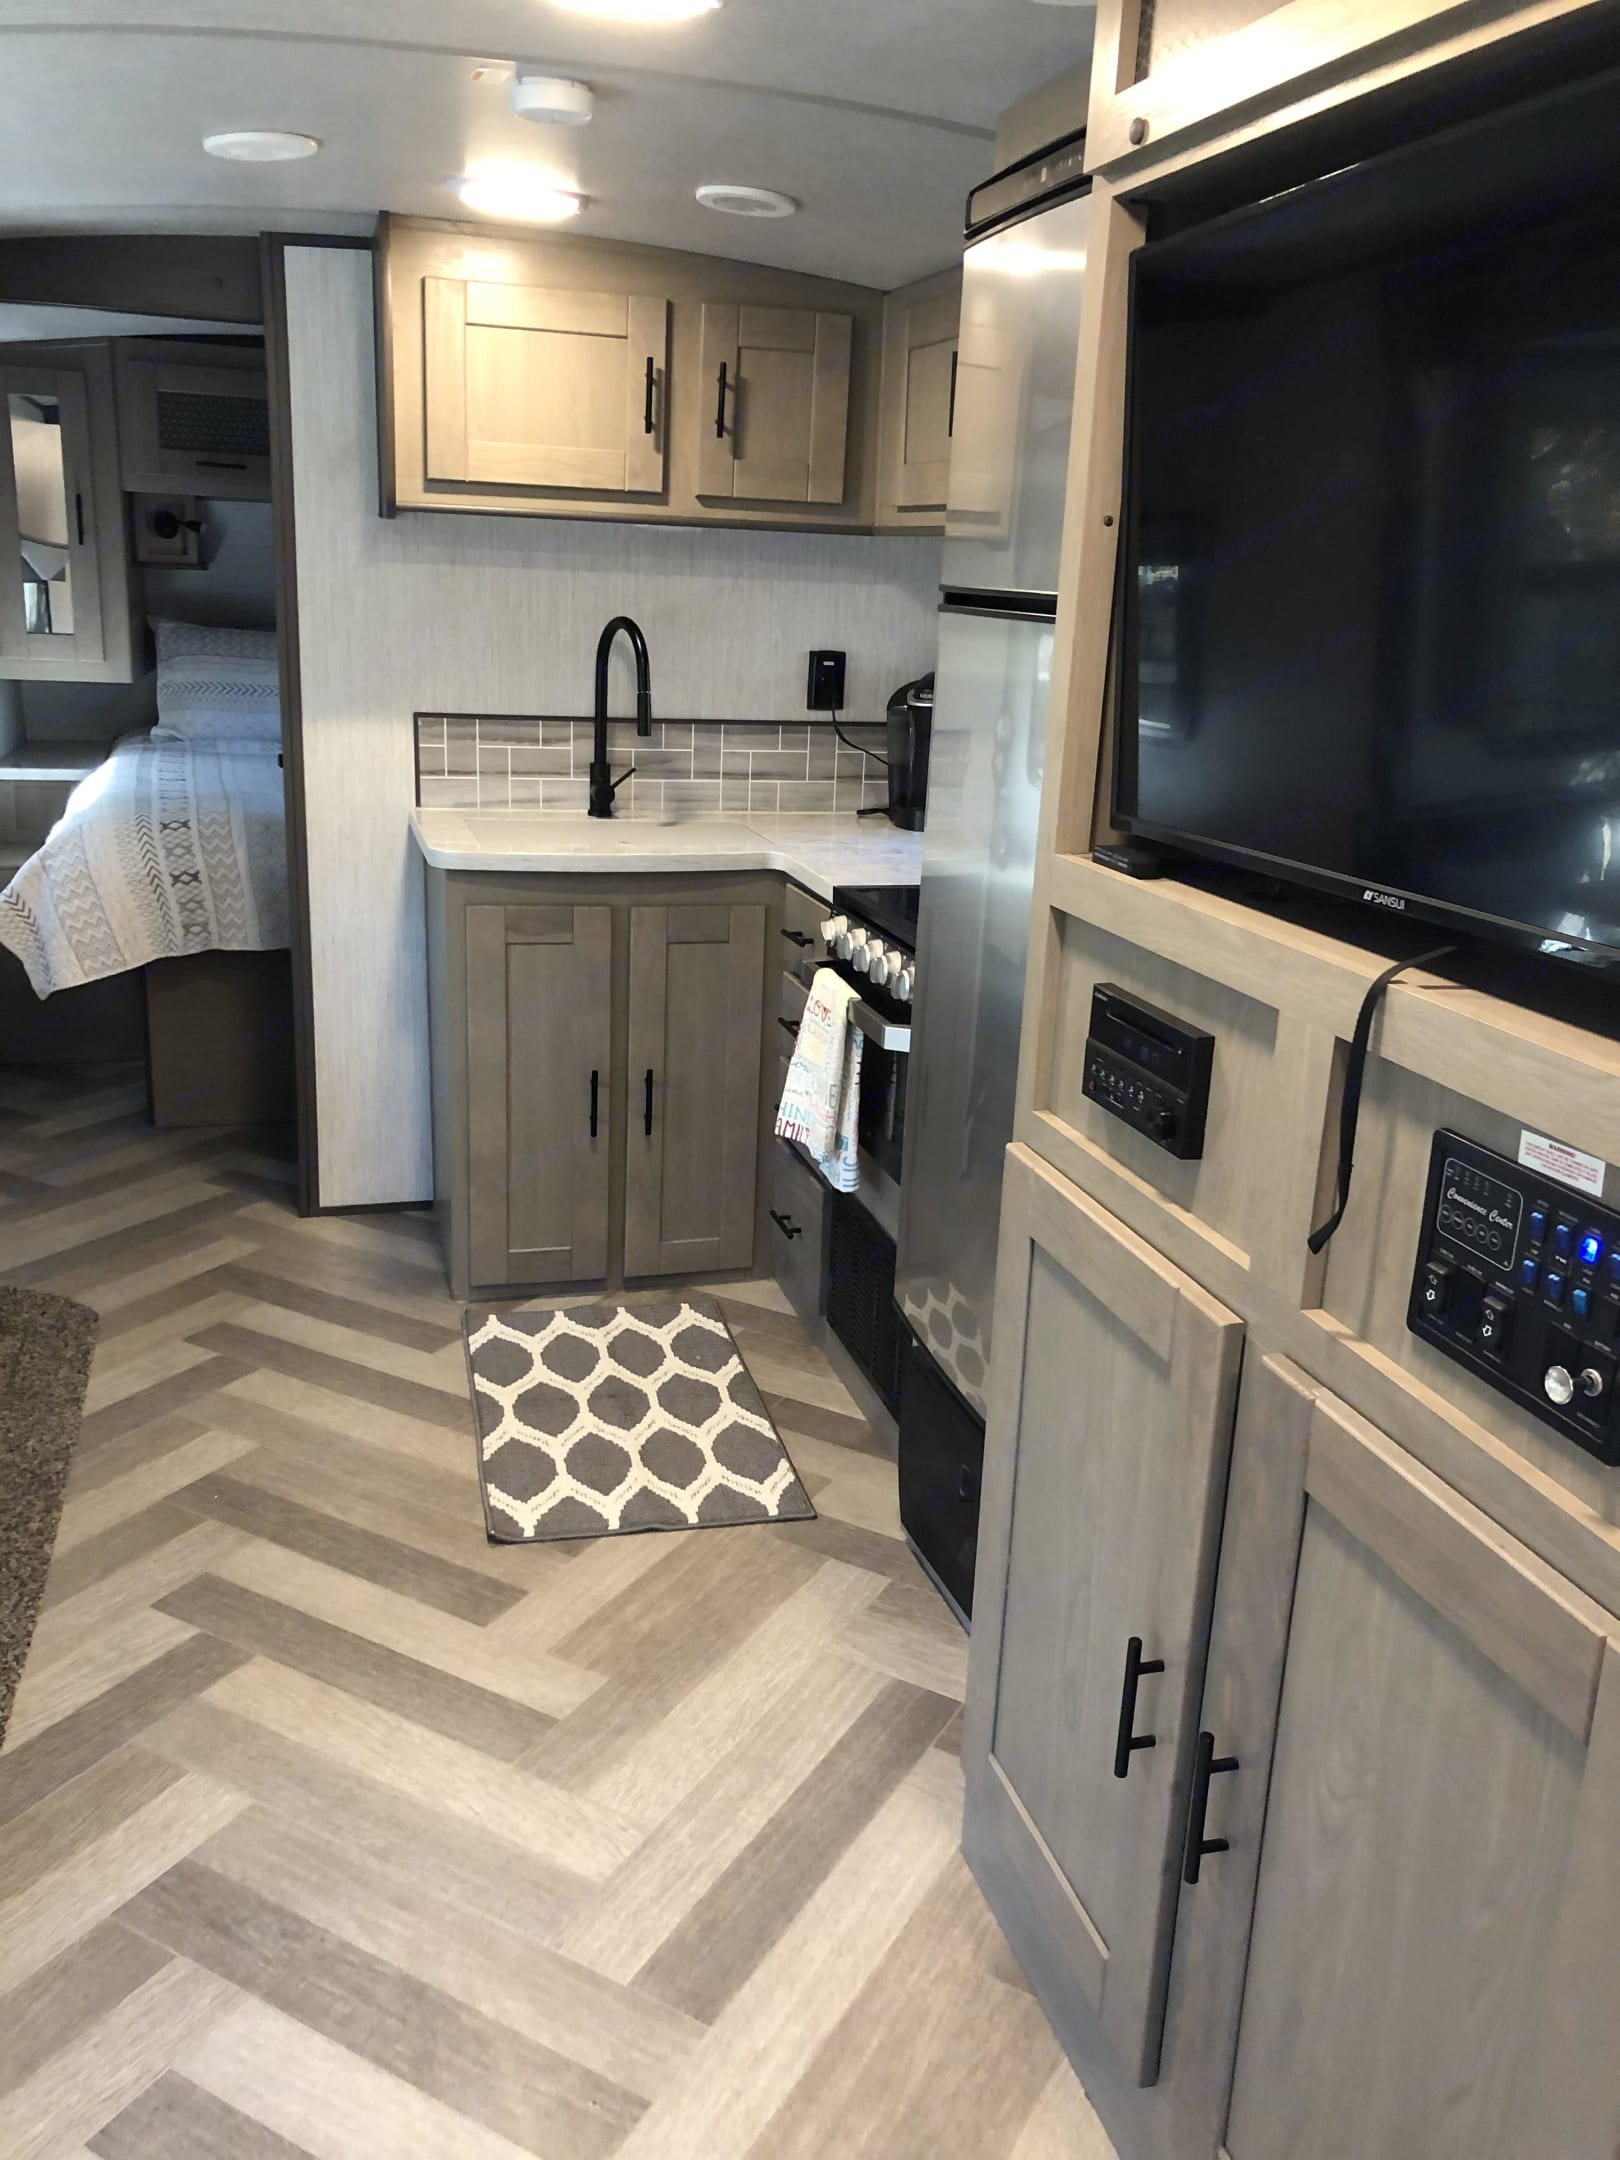 Great large refrigerator! Oven, 3 burner stovetop & microwave. . Cruiser Rv Corp Twilight 2021